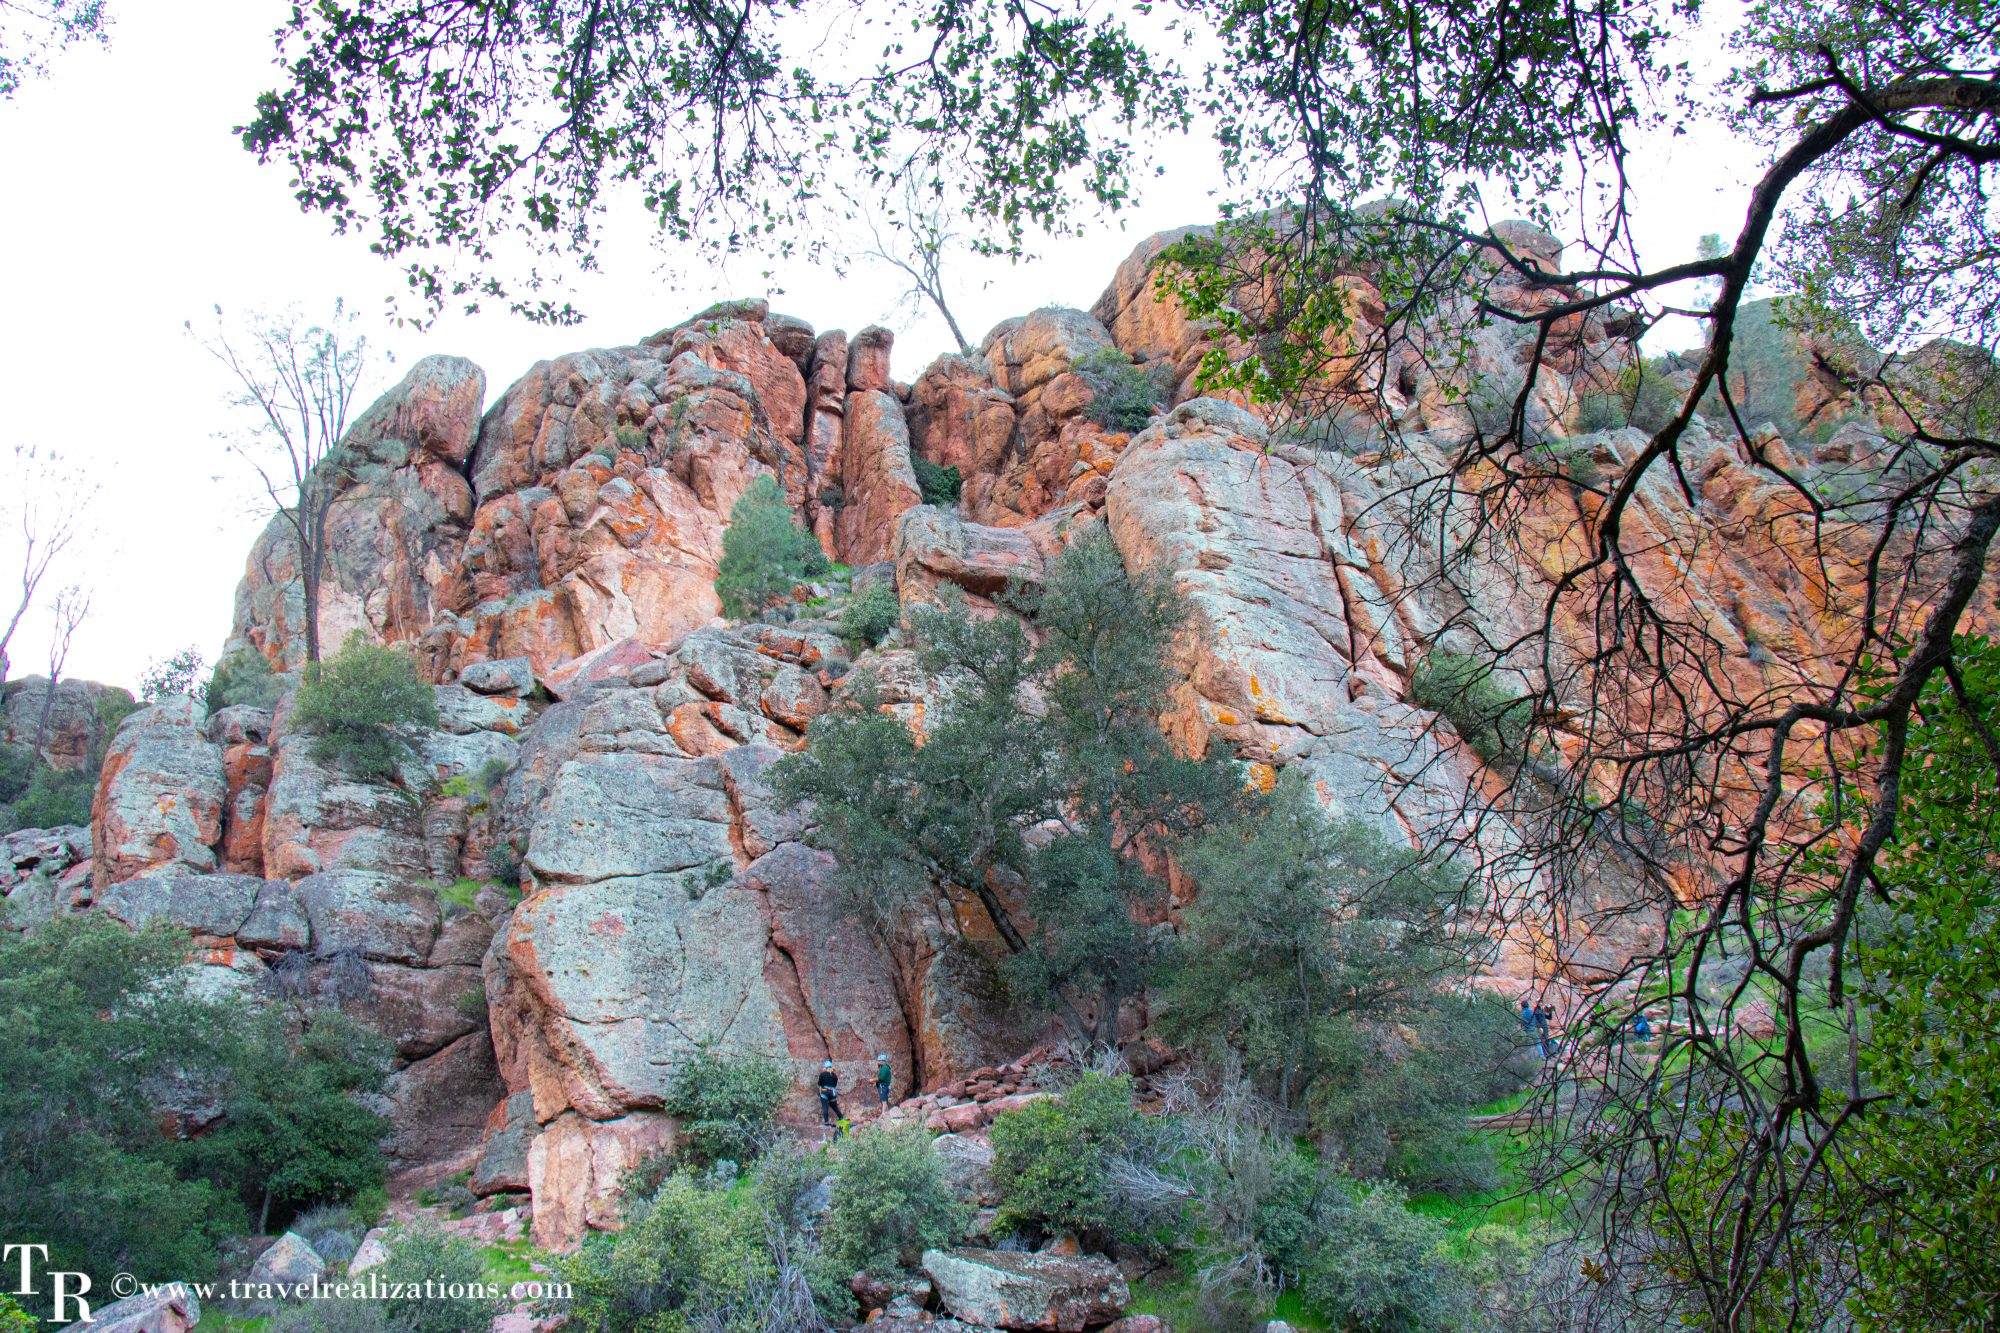 Postcards from Pinnacles National Park, Travel Realizations,